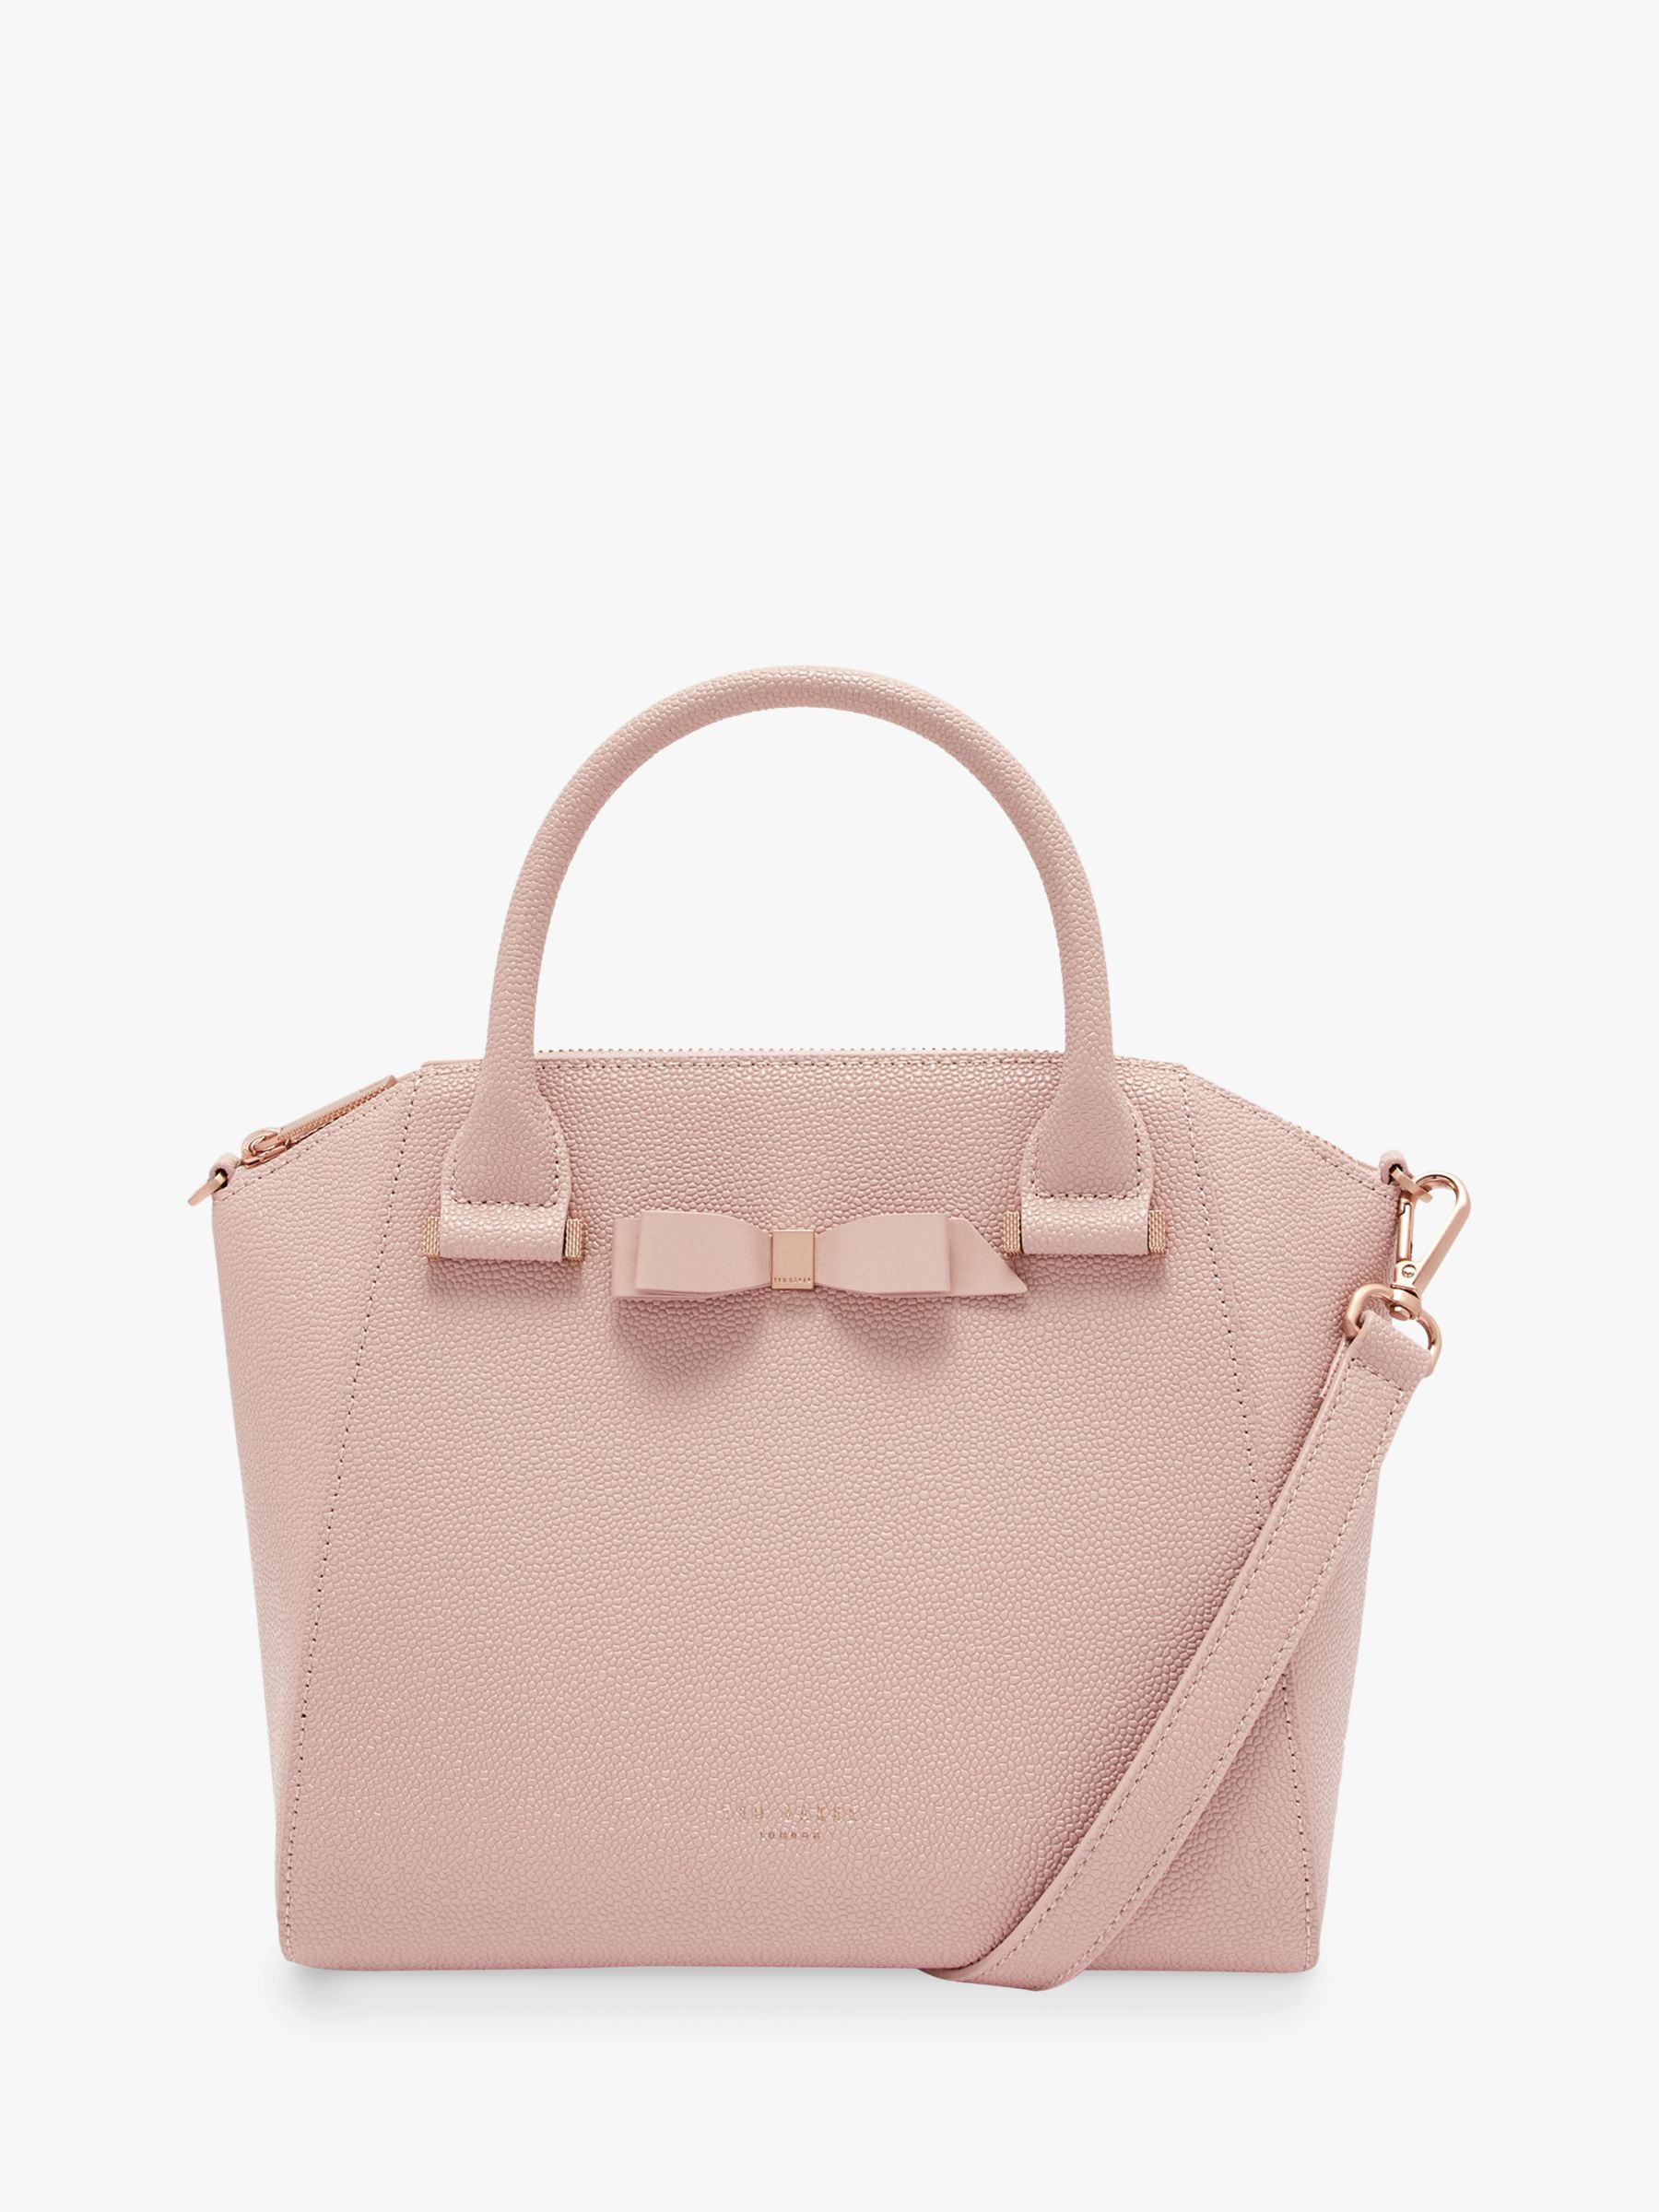 86ea184b5a860f Ted Baker Janne Bow Leather Tote Bag at John Lewis   Partners